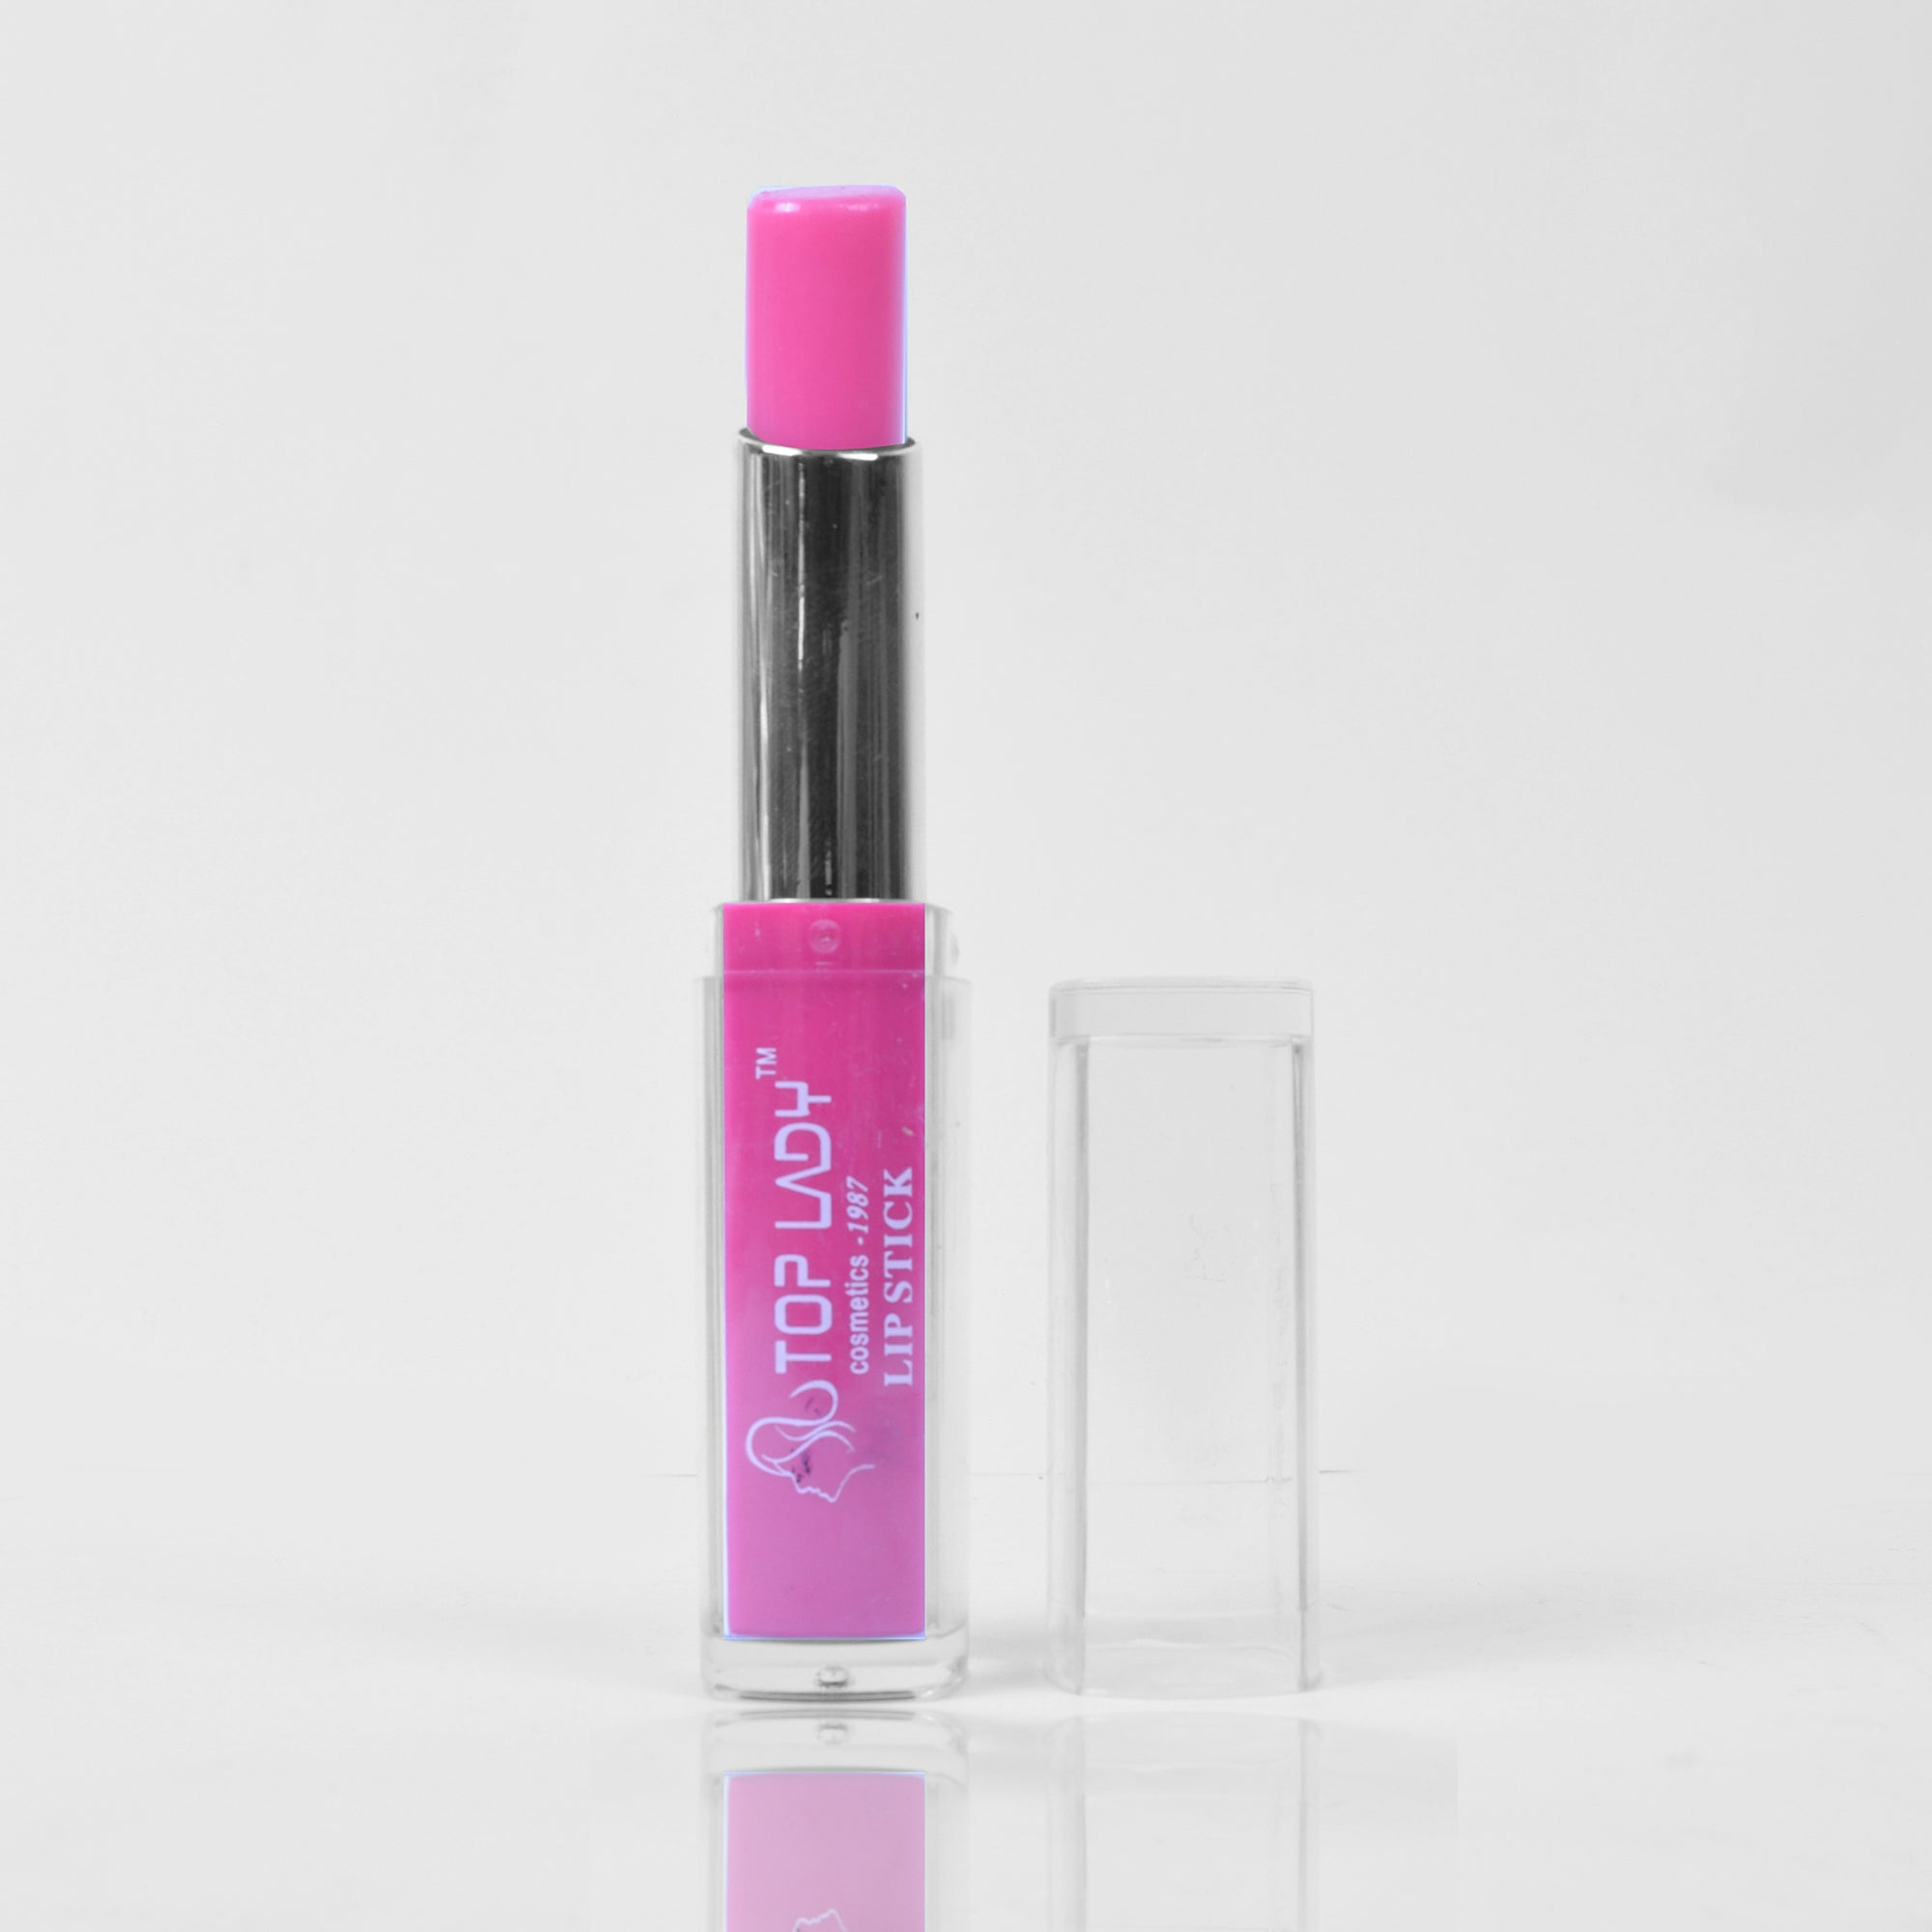 Top Lady Gloss Lipstick-Pink-NA7041